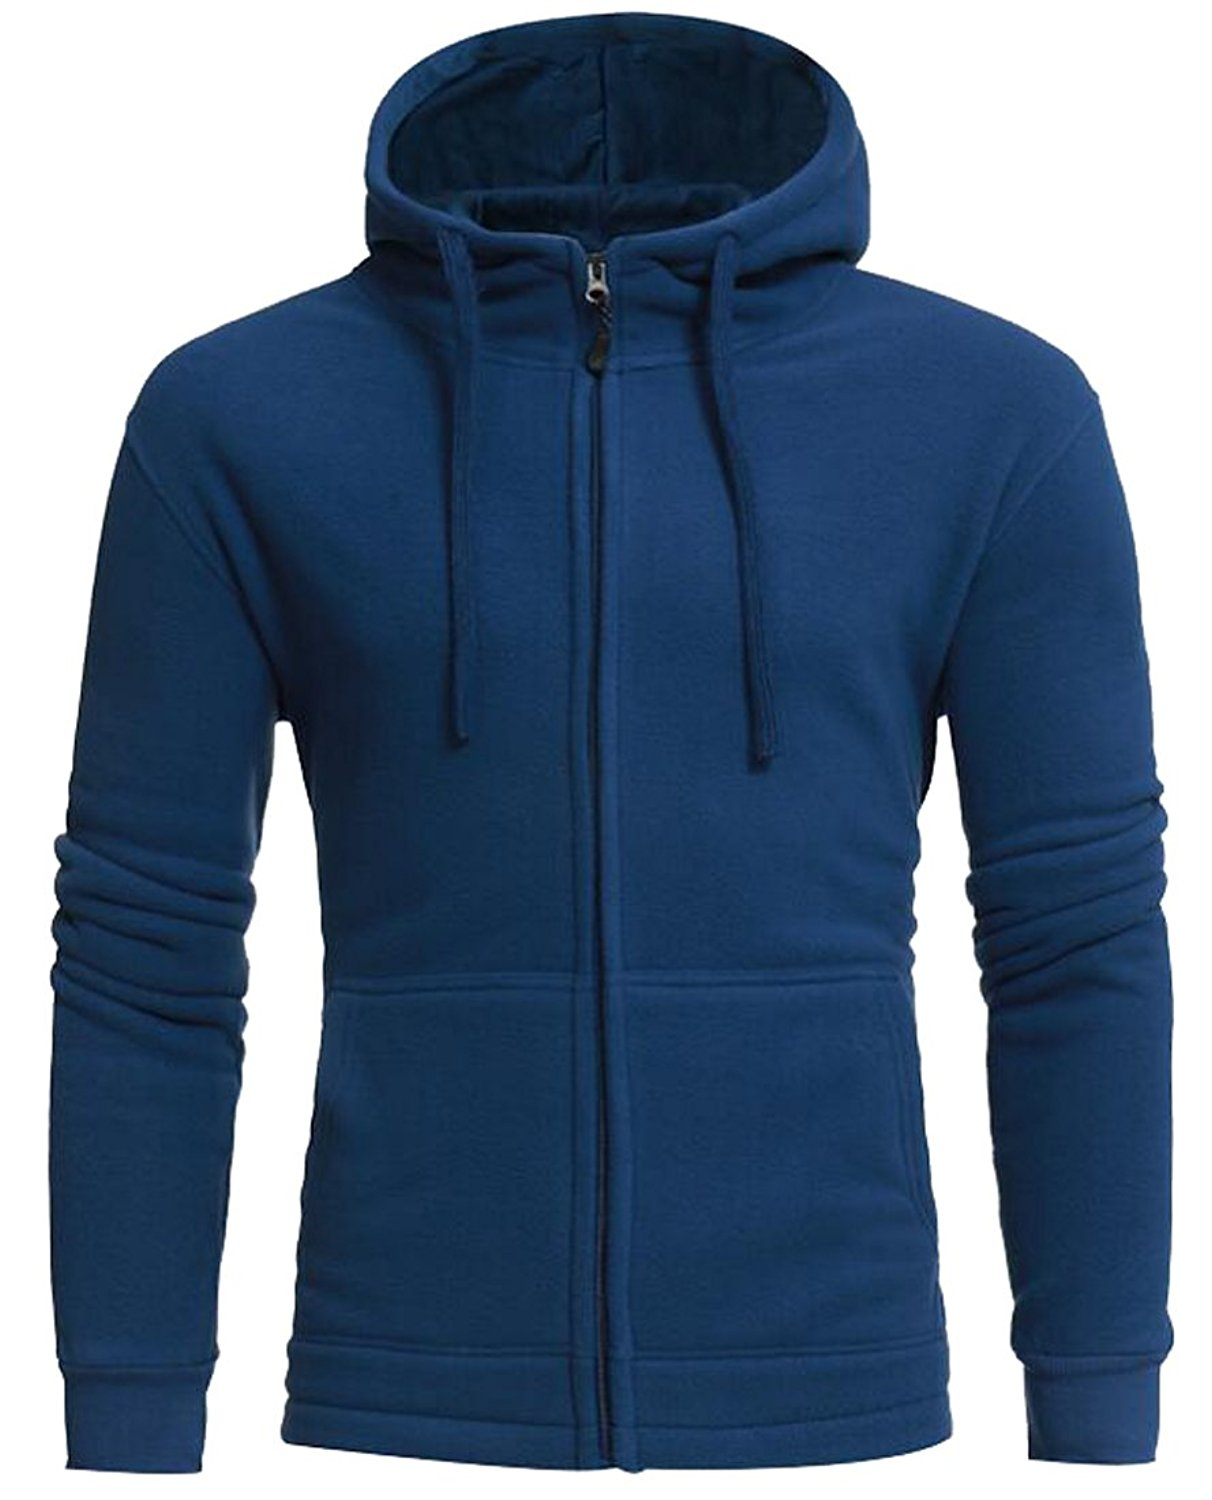 Oberora Mens Casual Solid Color Pockets Sweatshirt Hoodies Coat